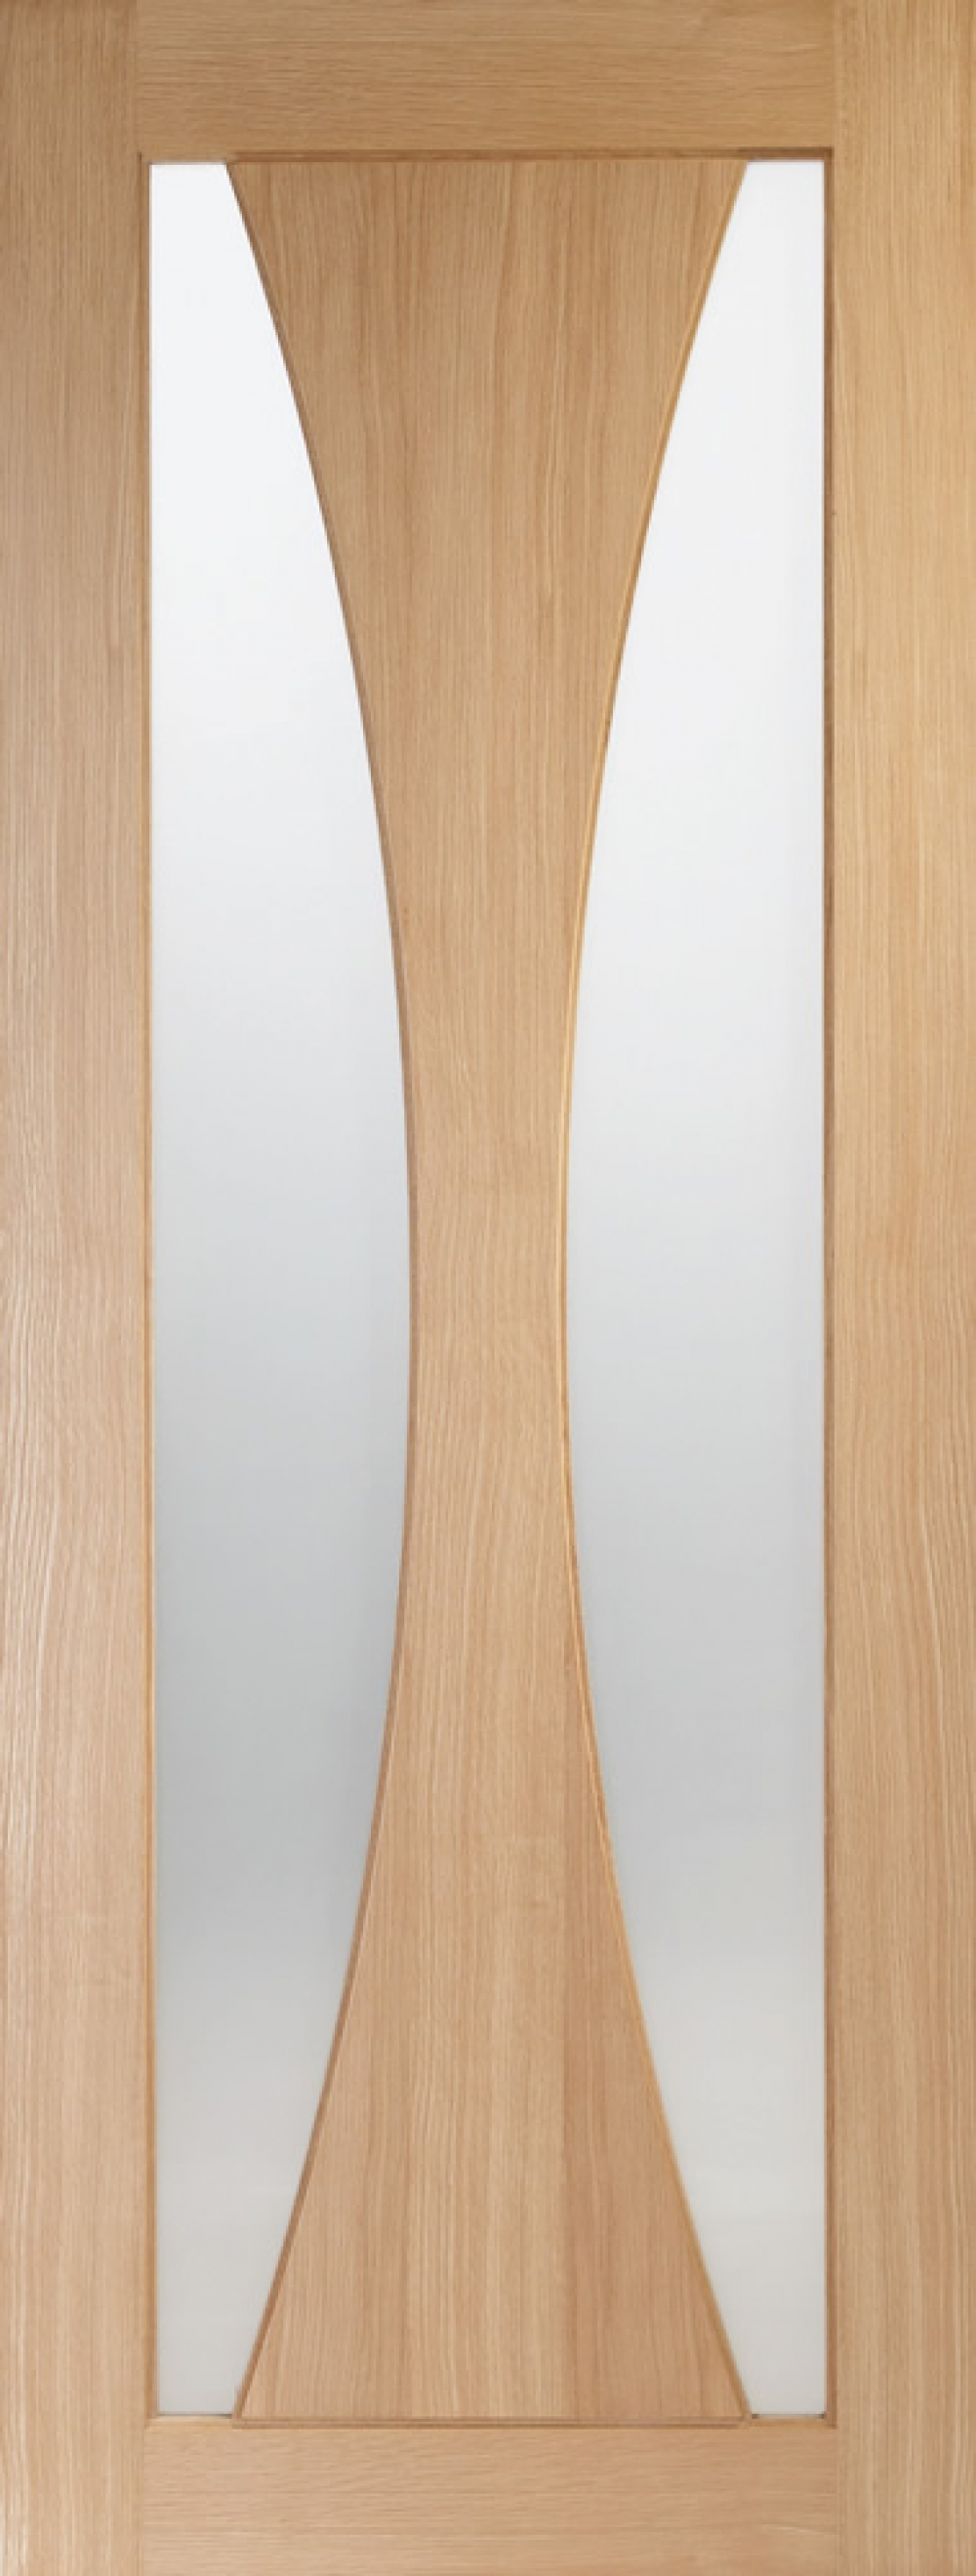 Verona Oak Glazed Door  - PREFINISHED